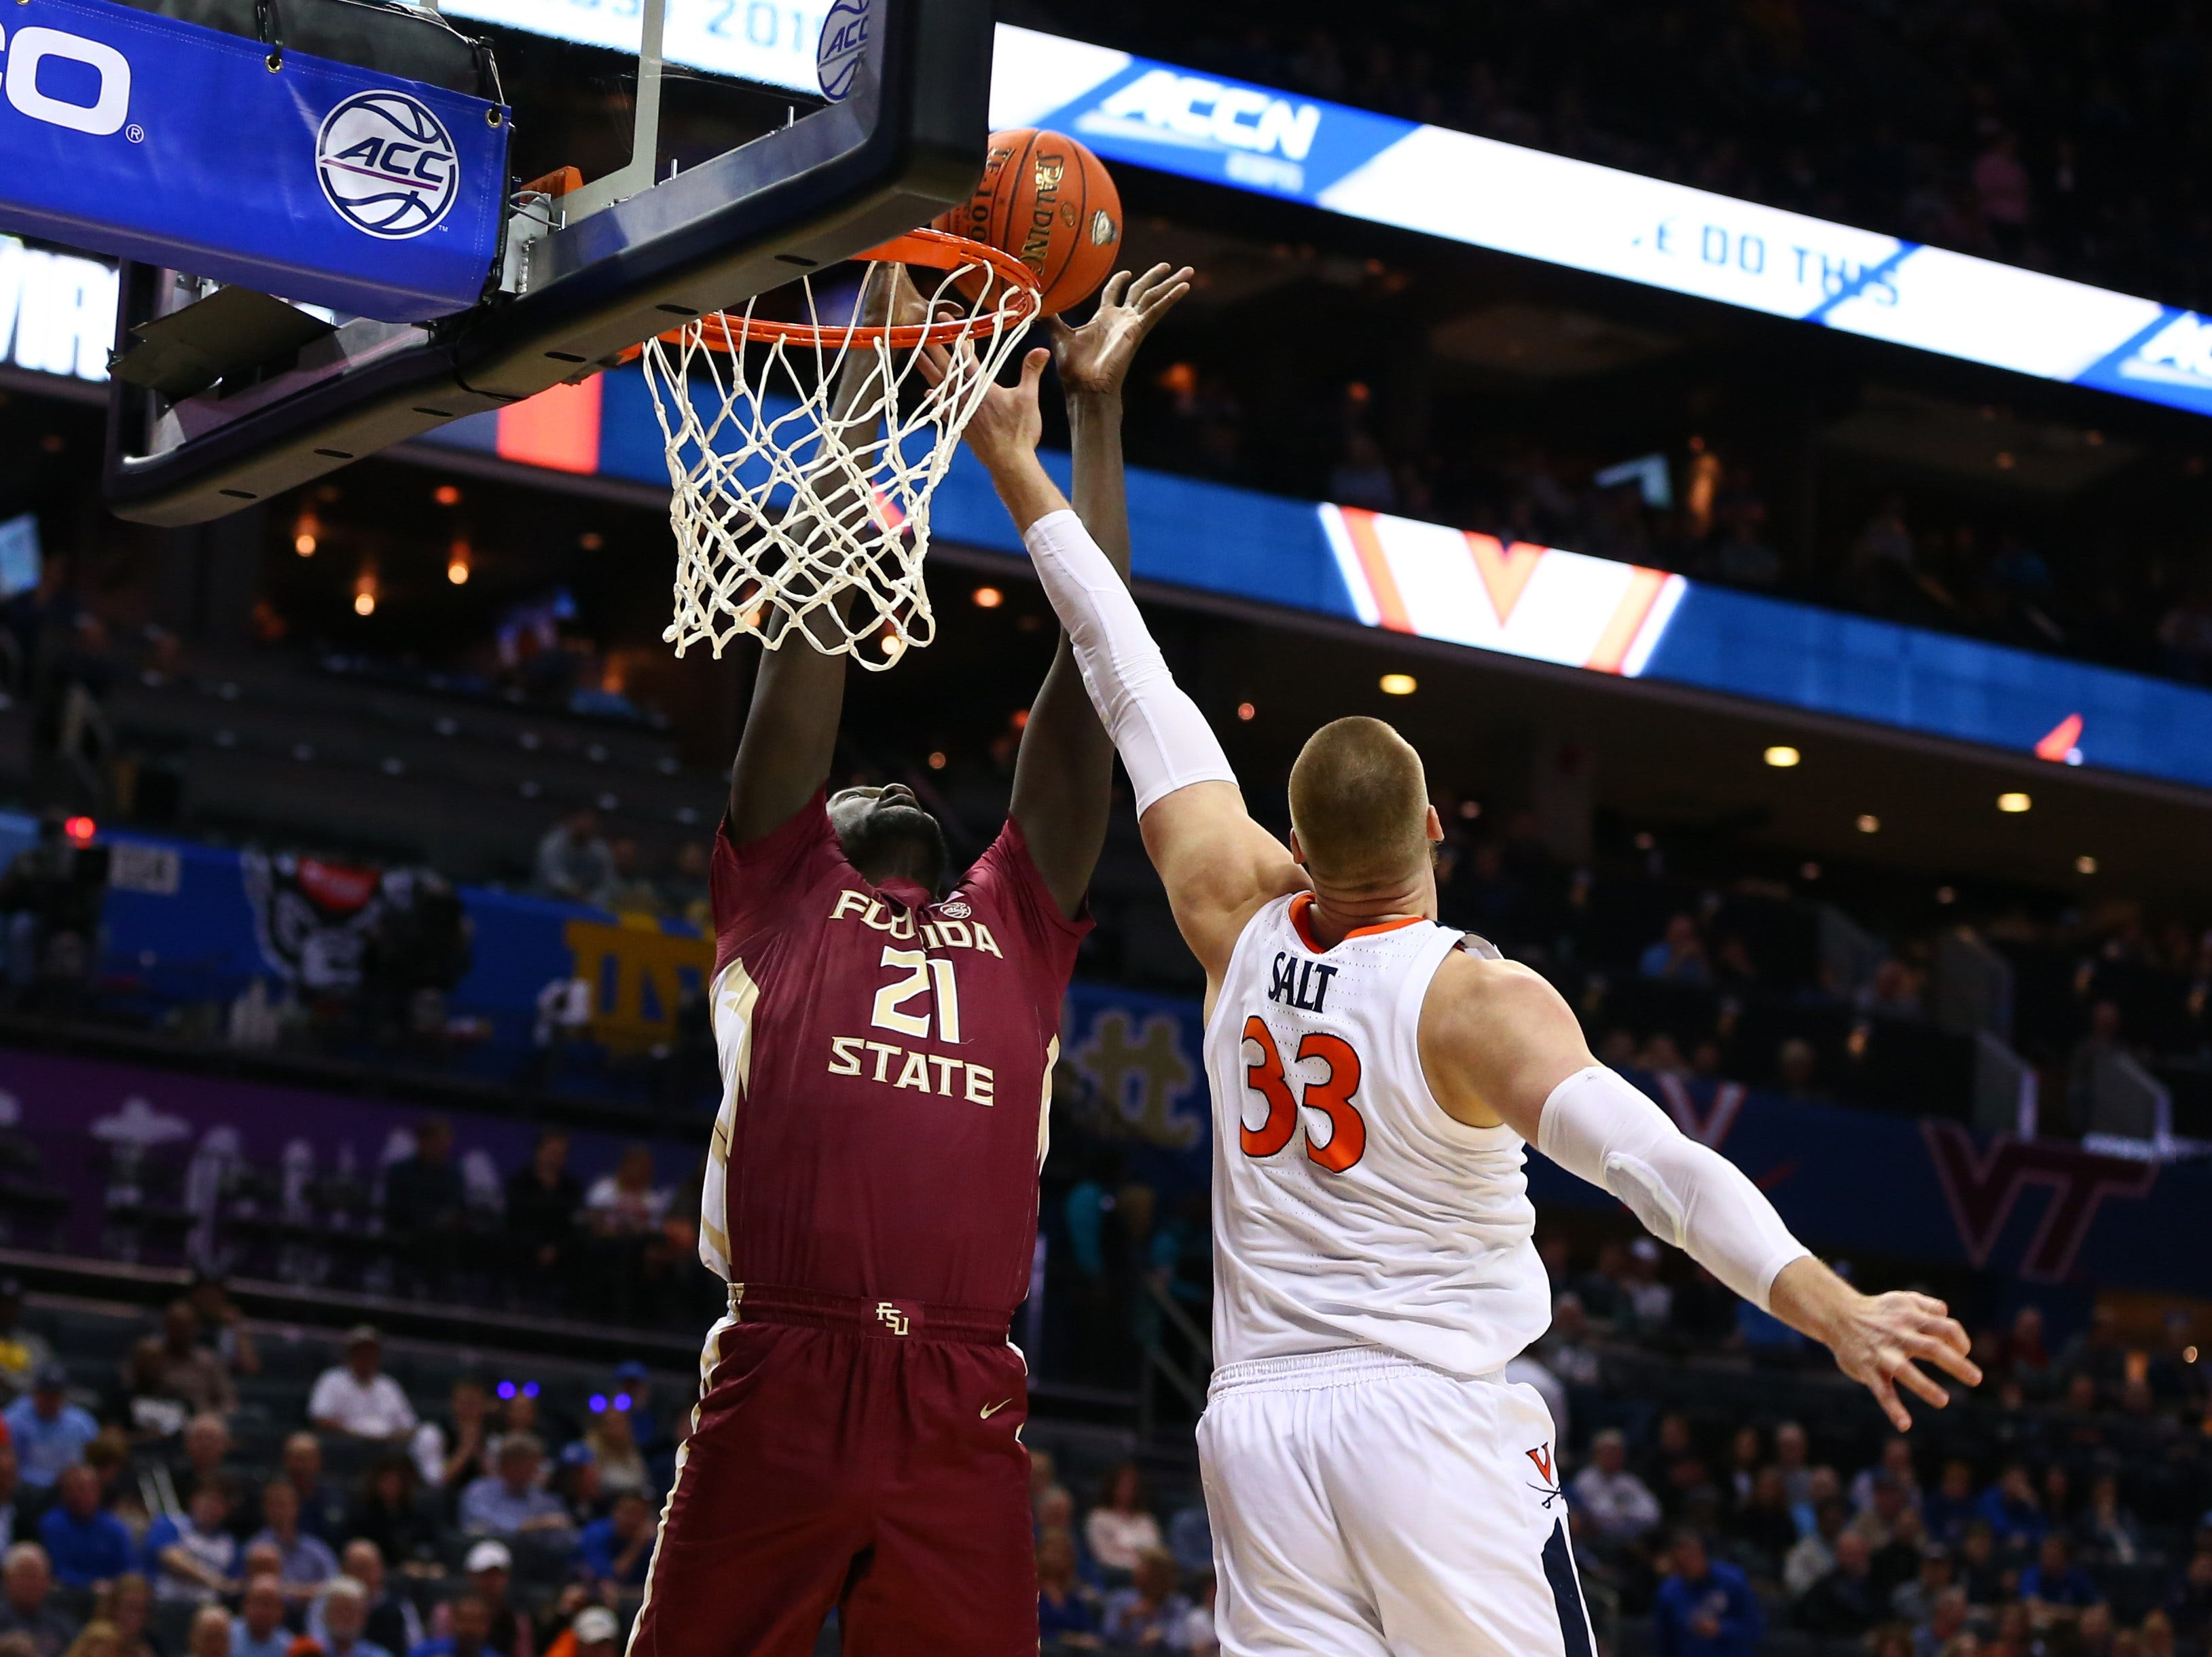 Mar 15, 2019; Charlotte, NC, USA; Florida State Seminoles center Christ Koumadje (21) goes up to dunk against Virginia Cavaliers center Jack Salt (33) in the first half in the ACC conference tournament at Spectrum Center. Mandatory Credit: Jeremy Brevard-USA TODAY Sports